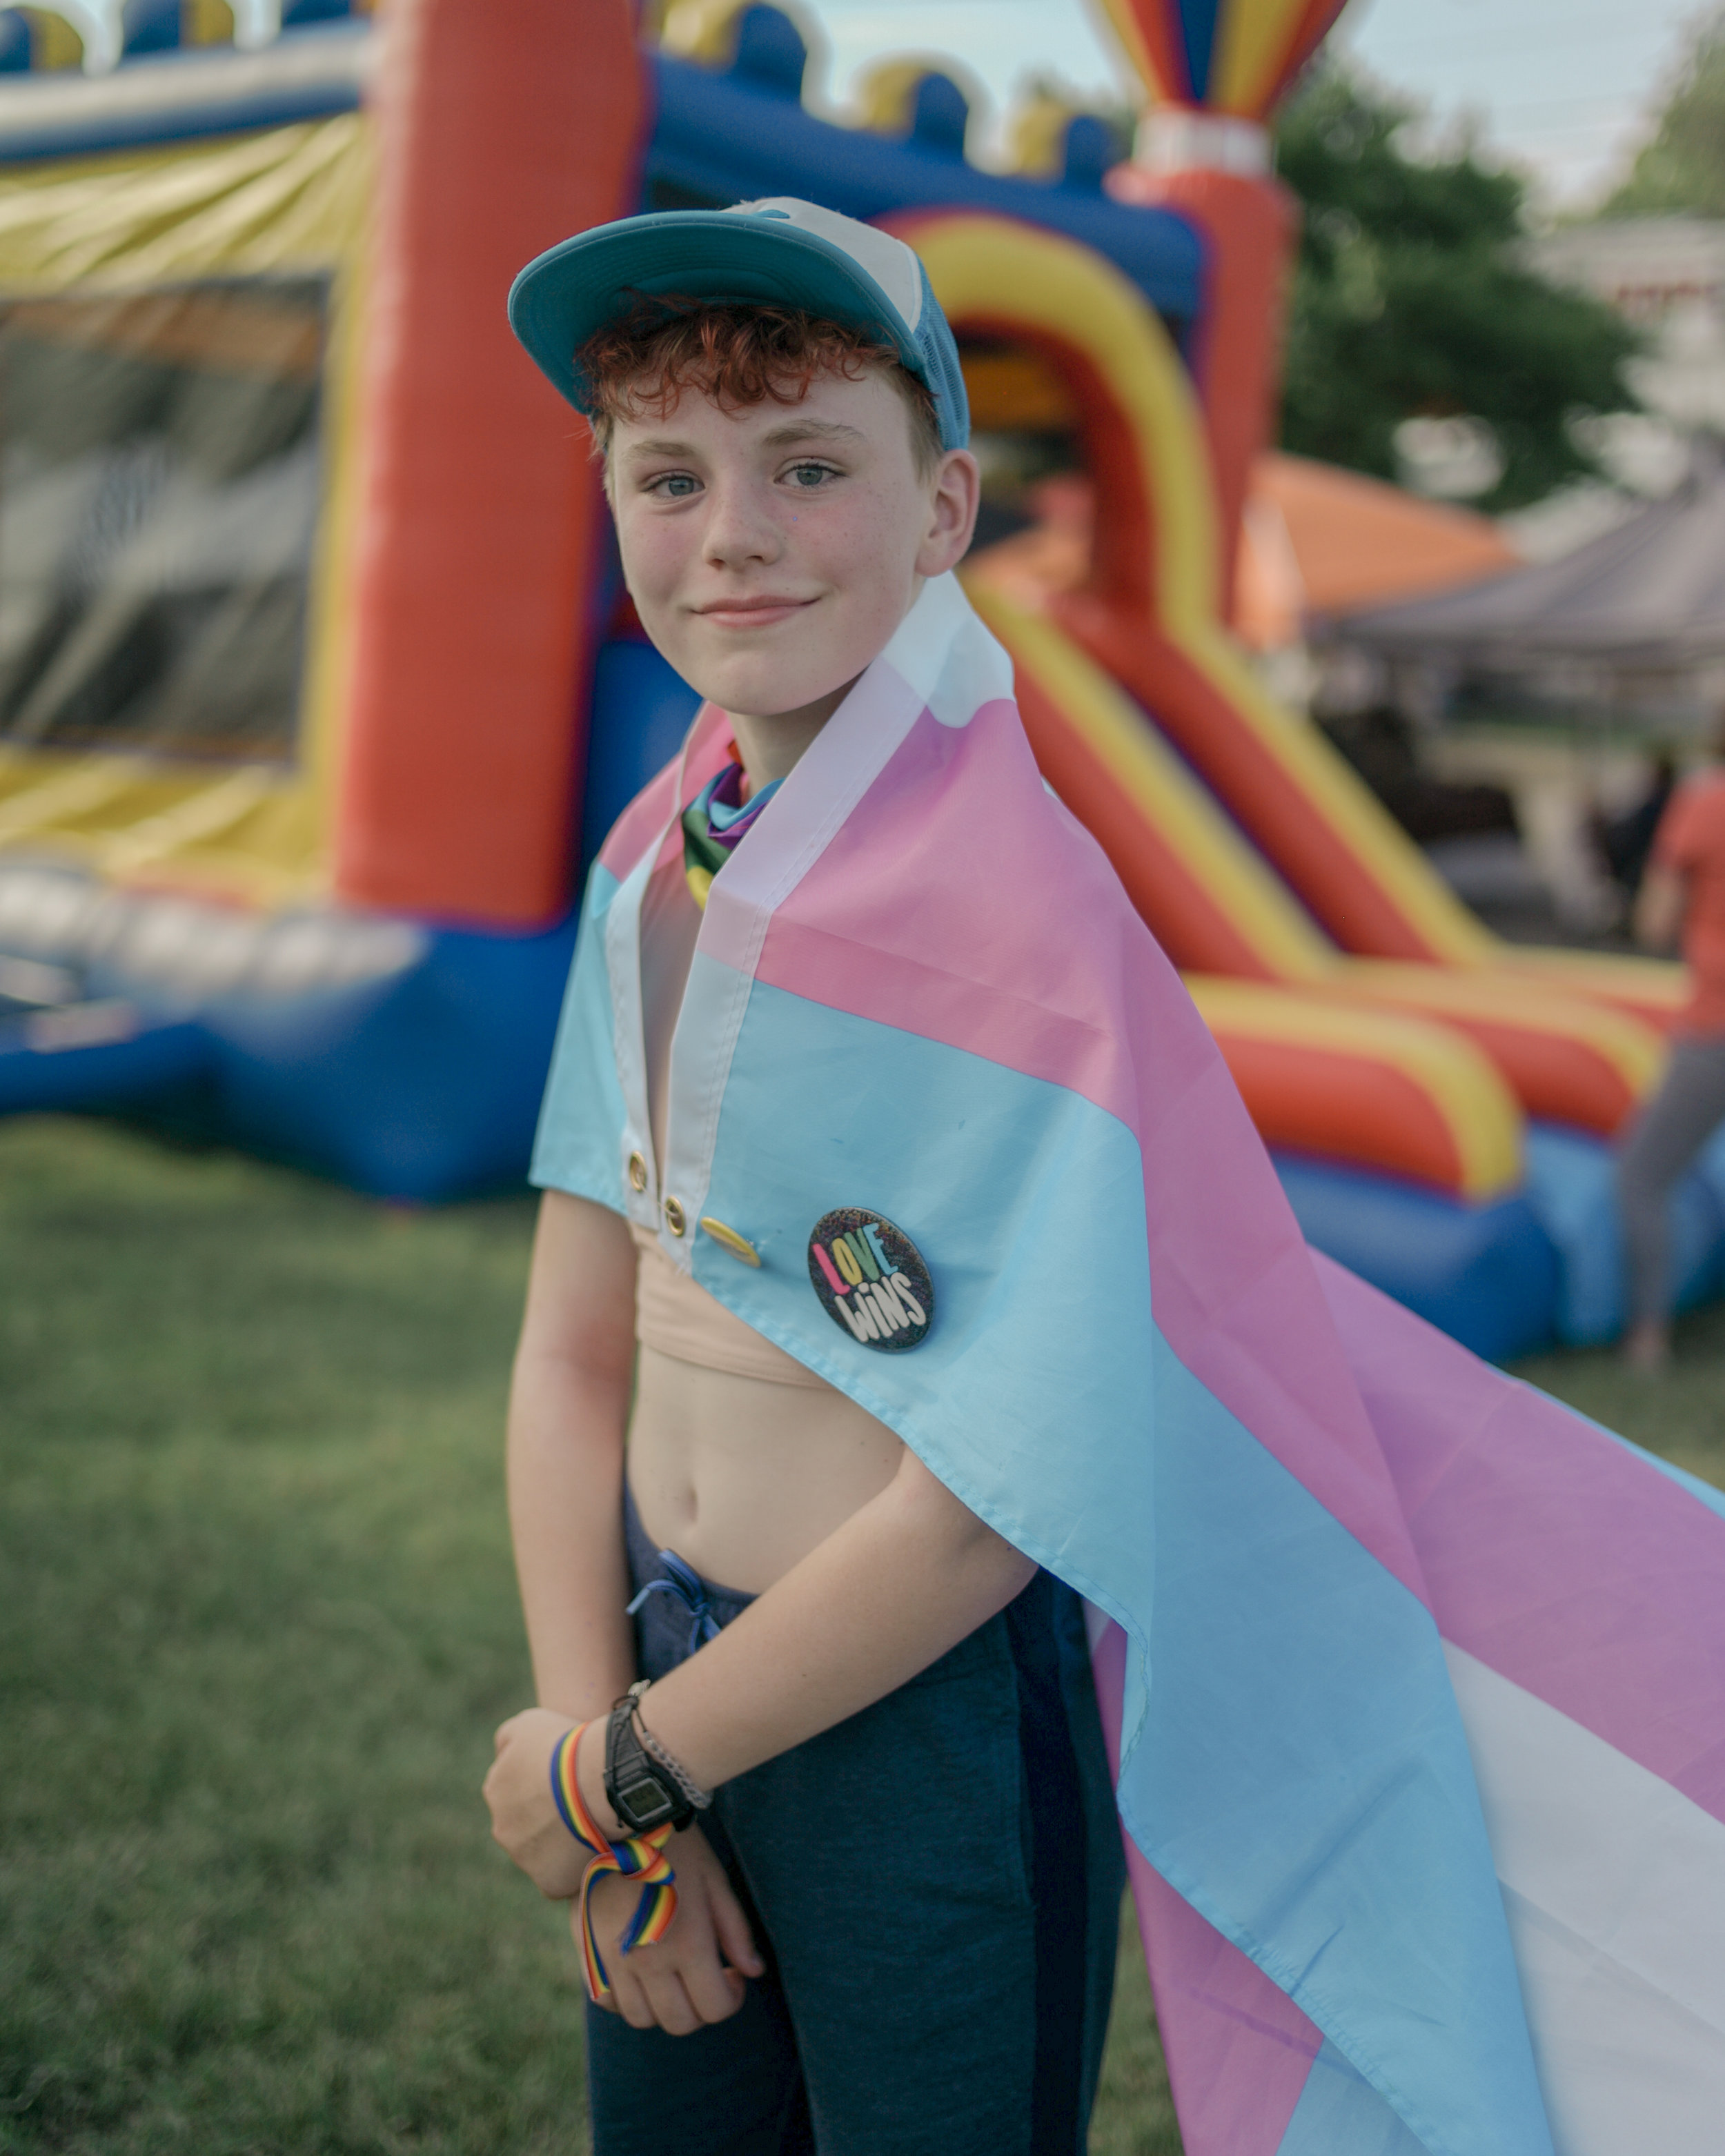 """Columbia resident Baker Thompson, 14, discovered the LGBTQ community in the theater department at West Middle School. """"It all started by talking about bisexuality and ever since I am very active in my community,"""" he said. Thompson, a freshman at Hickman High School, is openly pansexual. """"Last year I gave a TED Talk about being transgender to raise awareness for the trans community. People are very ignorant of LGBTQ rights and if someone had to talk about being transgender, it had to be me."""""""